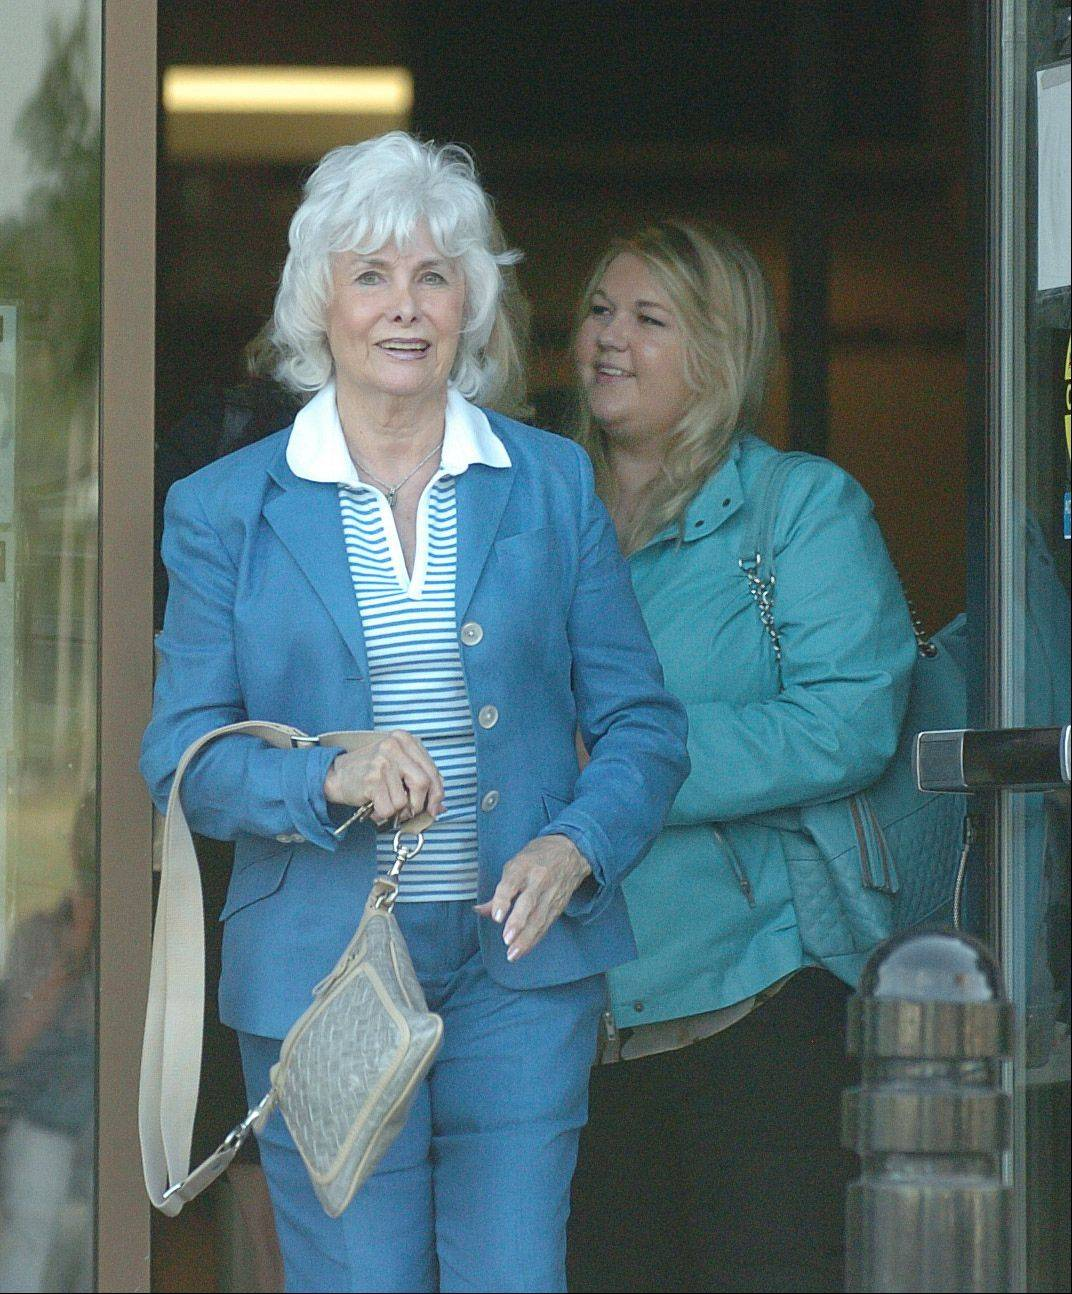 Mallory Webber, right, and her grandmother, Marjorie Webber, leave the DuPage County Courthouse last week. Mallory's mother, Marci Webber, was found not guilty by reason of insanity for the murder of her 4-year-old daughter in Bloomingdale.